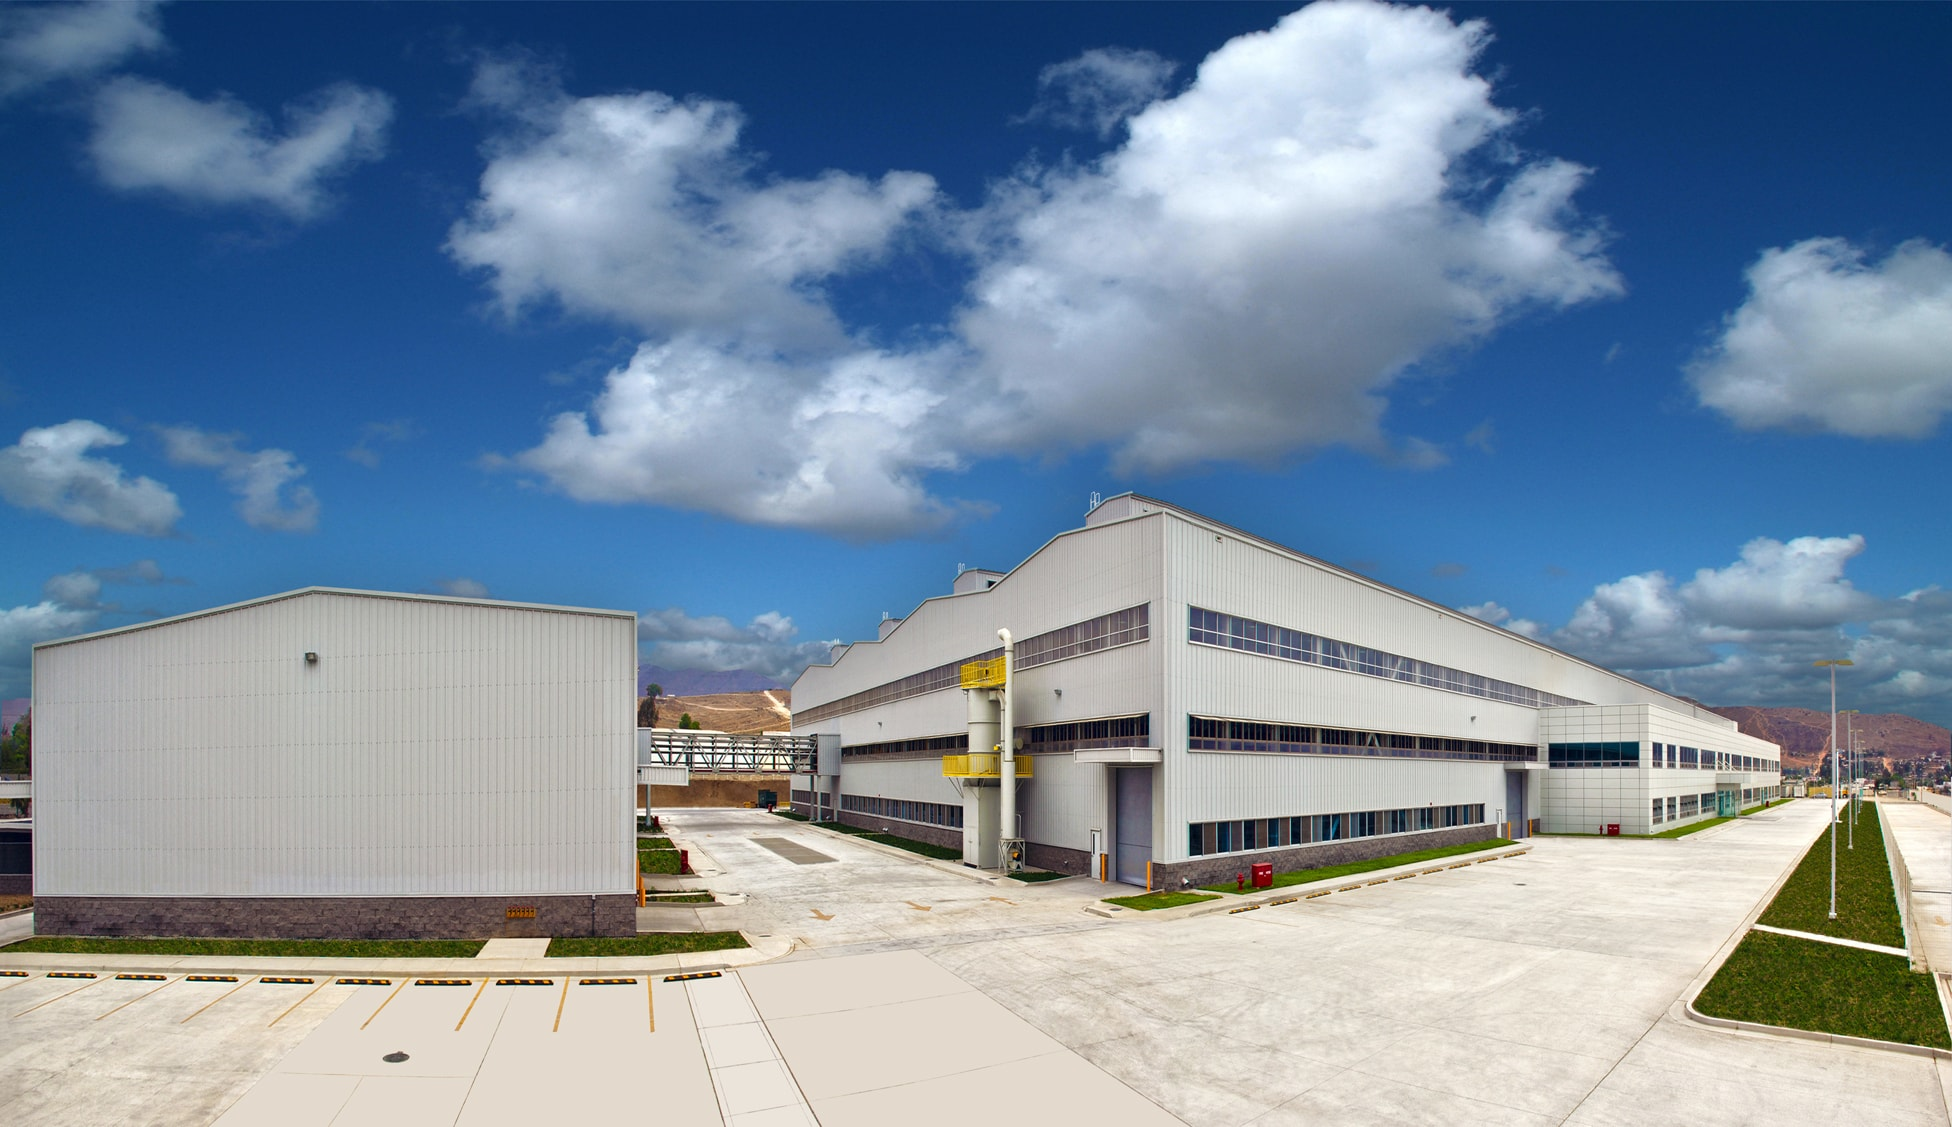 Panoramic shot of Hyundai industrial facility in Tijuana, Baja California.